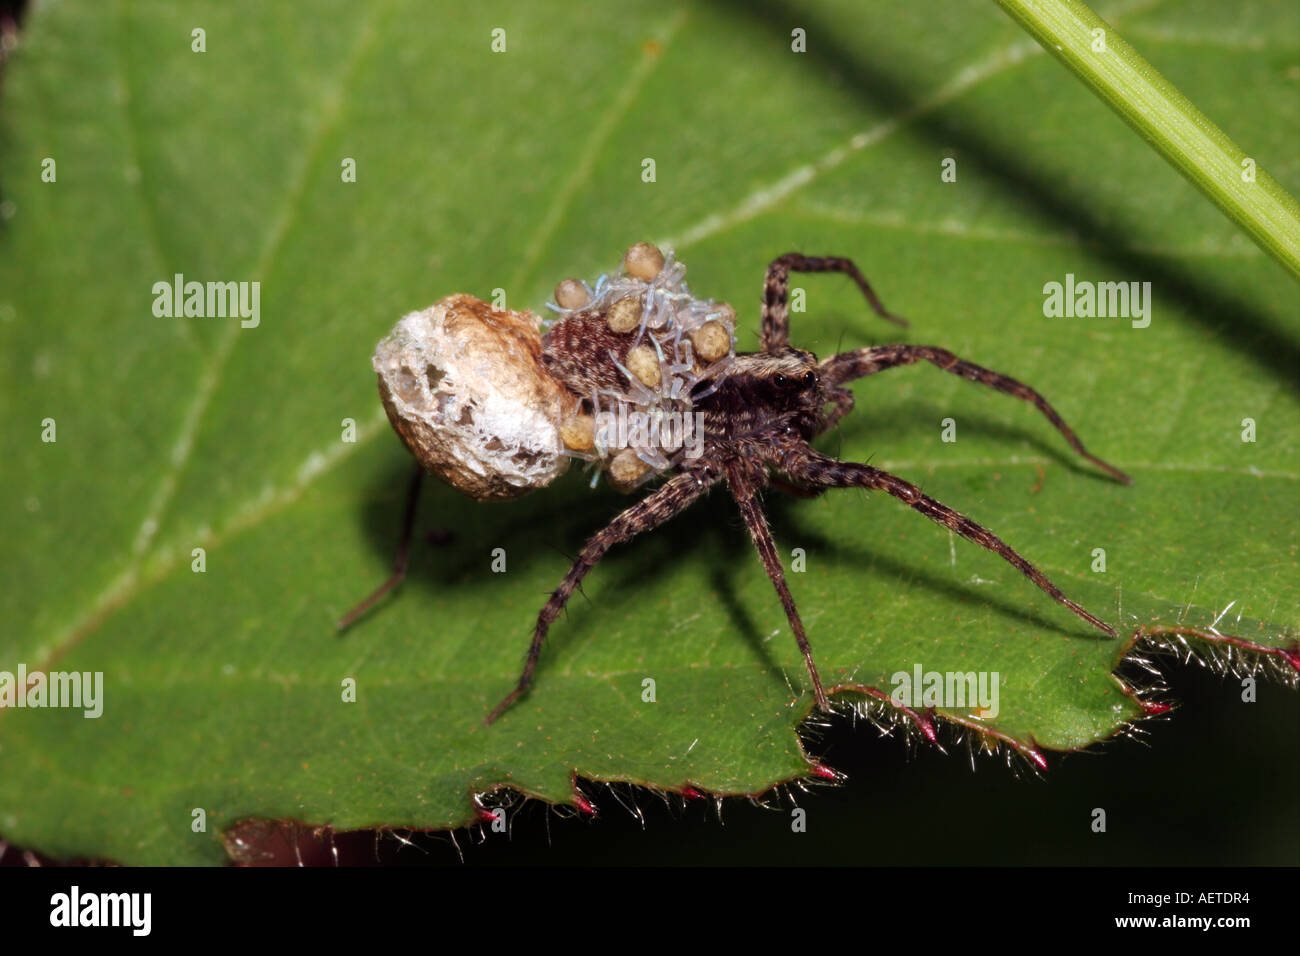 Spotted wolf spider Pardosa amentata Lycosidae with babies hatching from her egg sac and riding on her back UK - Stock Image